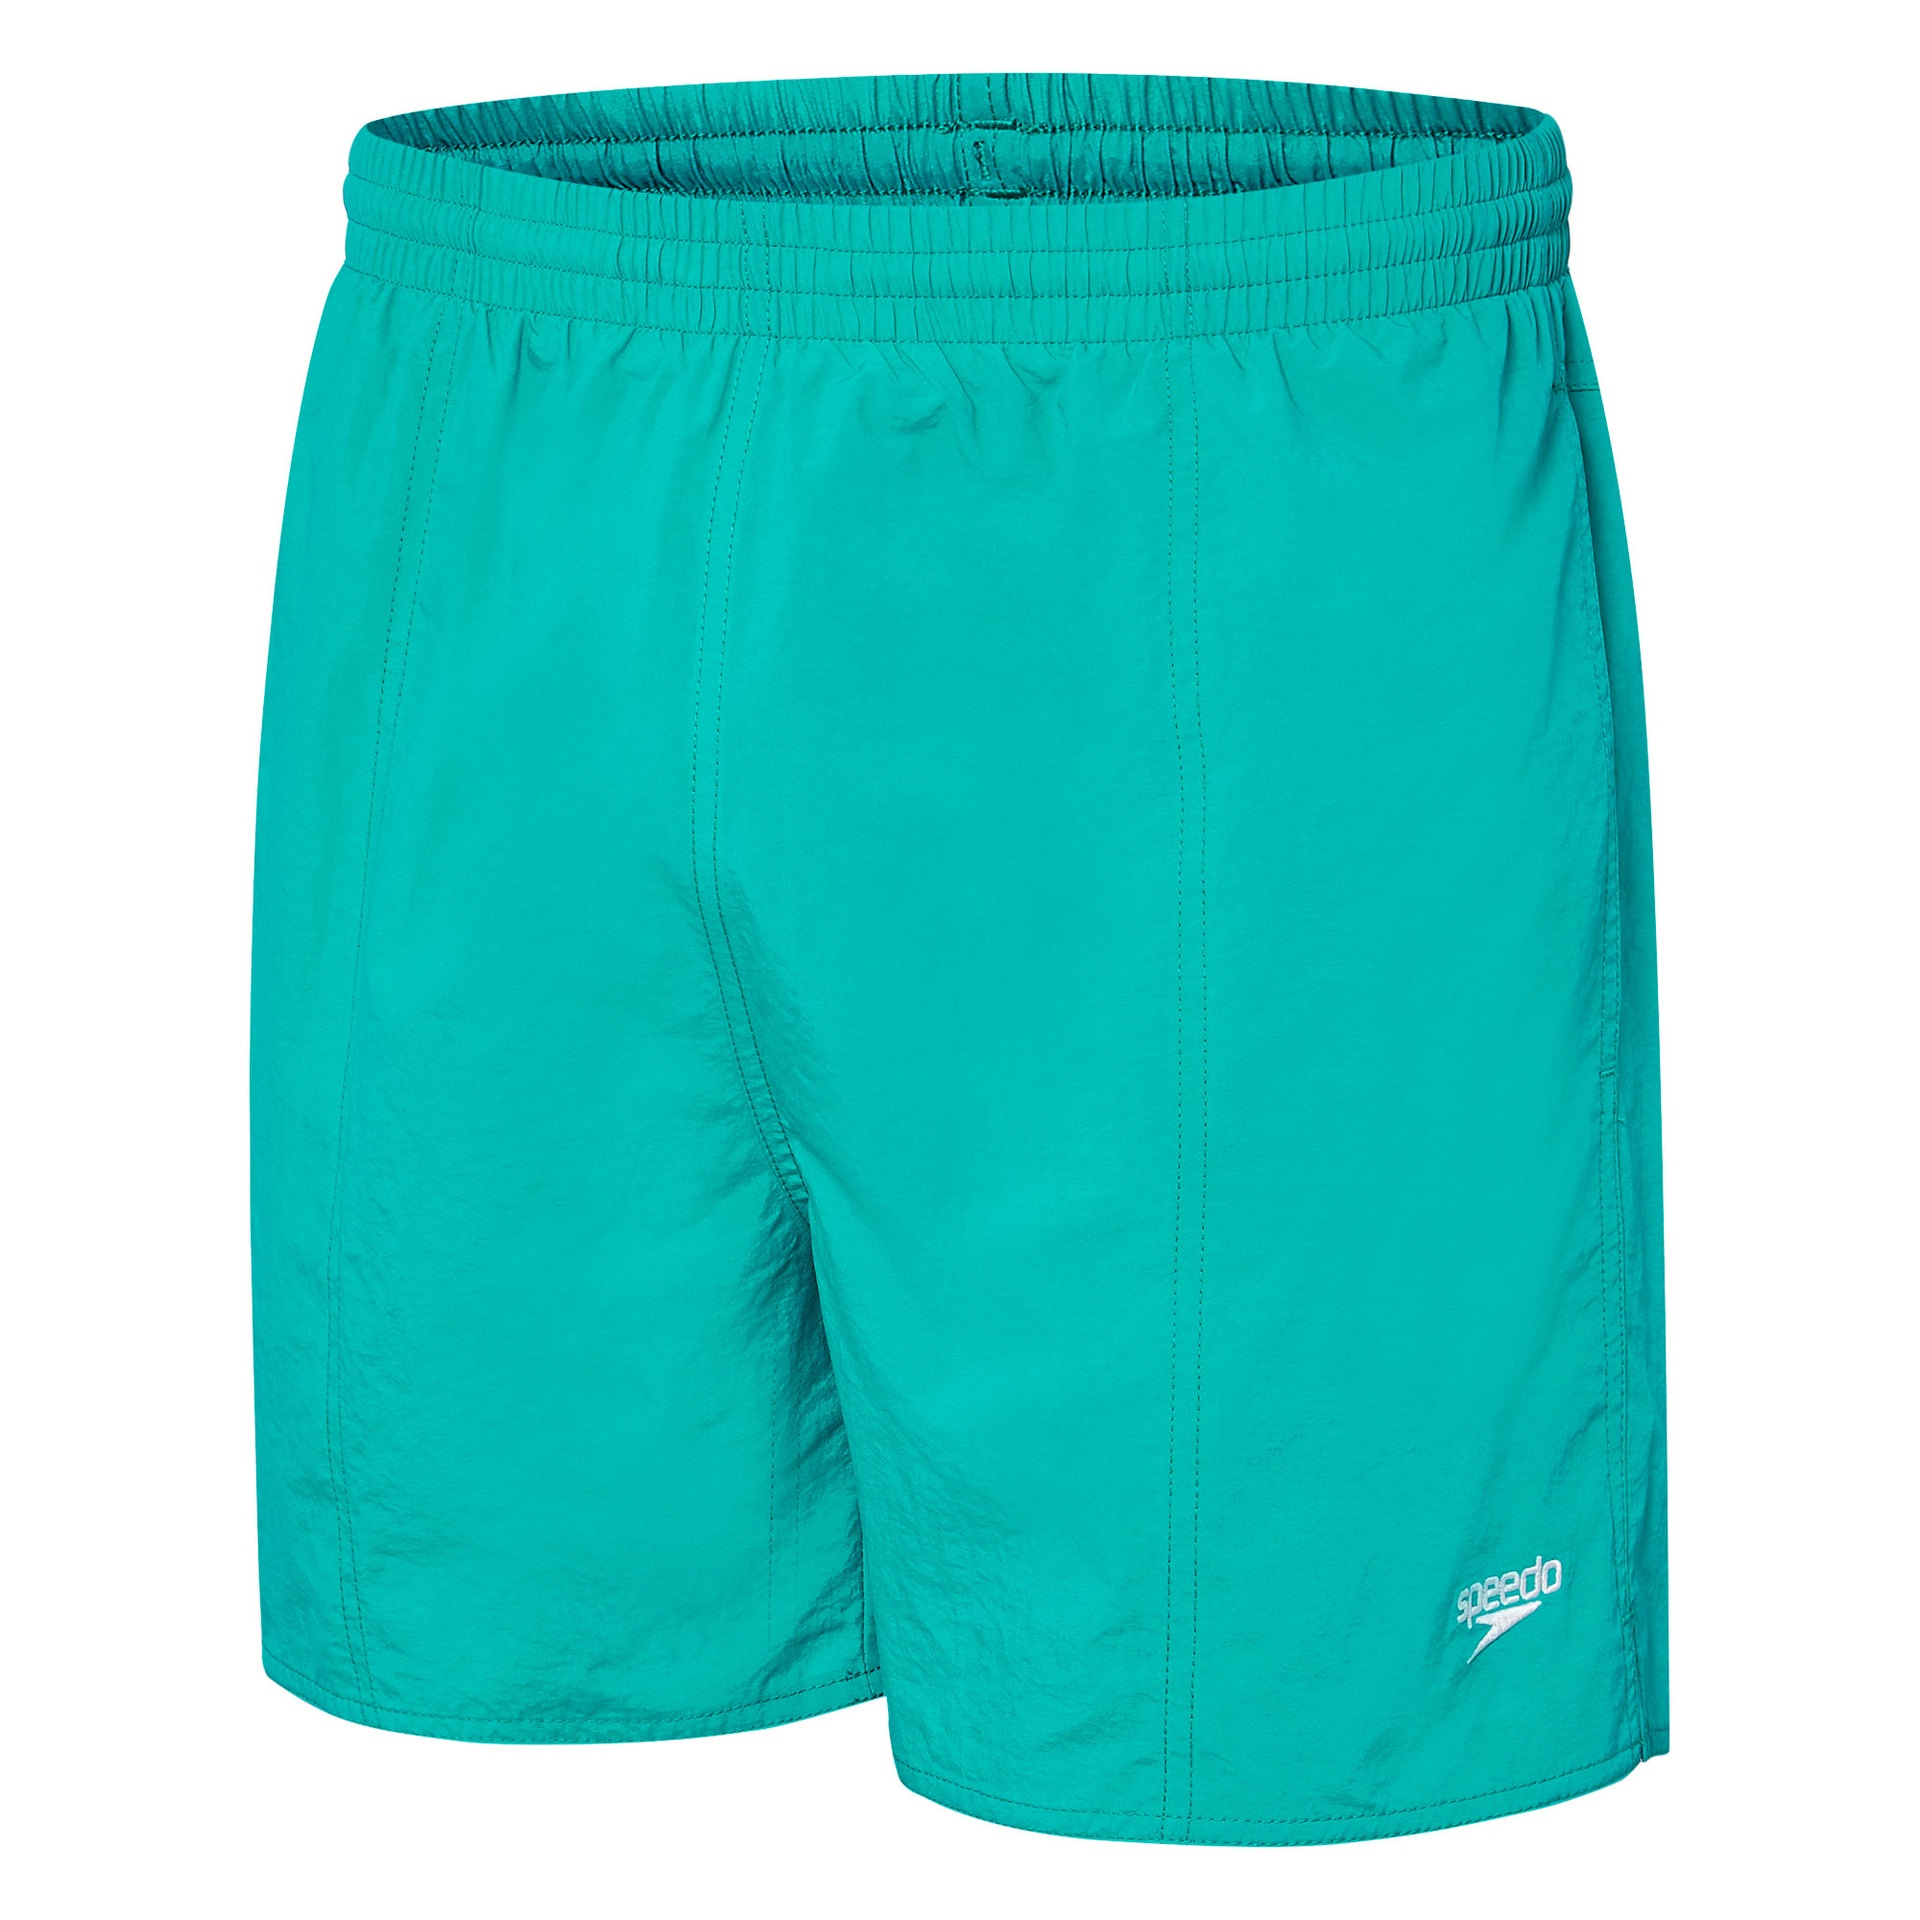 Mens Solid Leisure Short Jade